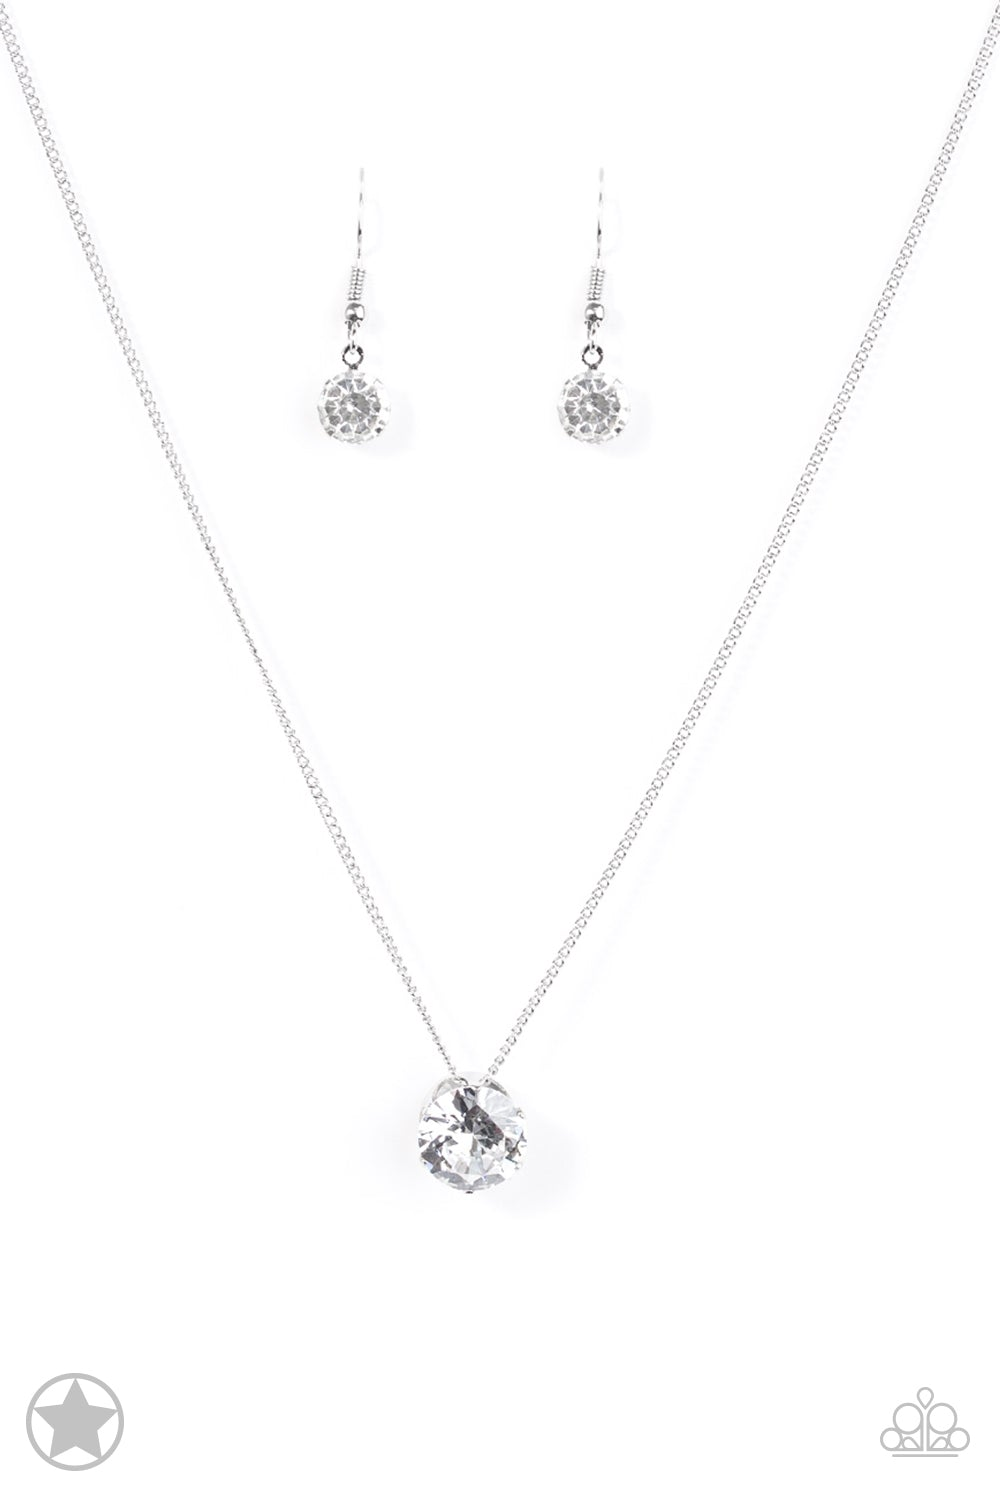 Paparazzi silver Necklace Set with white